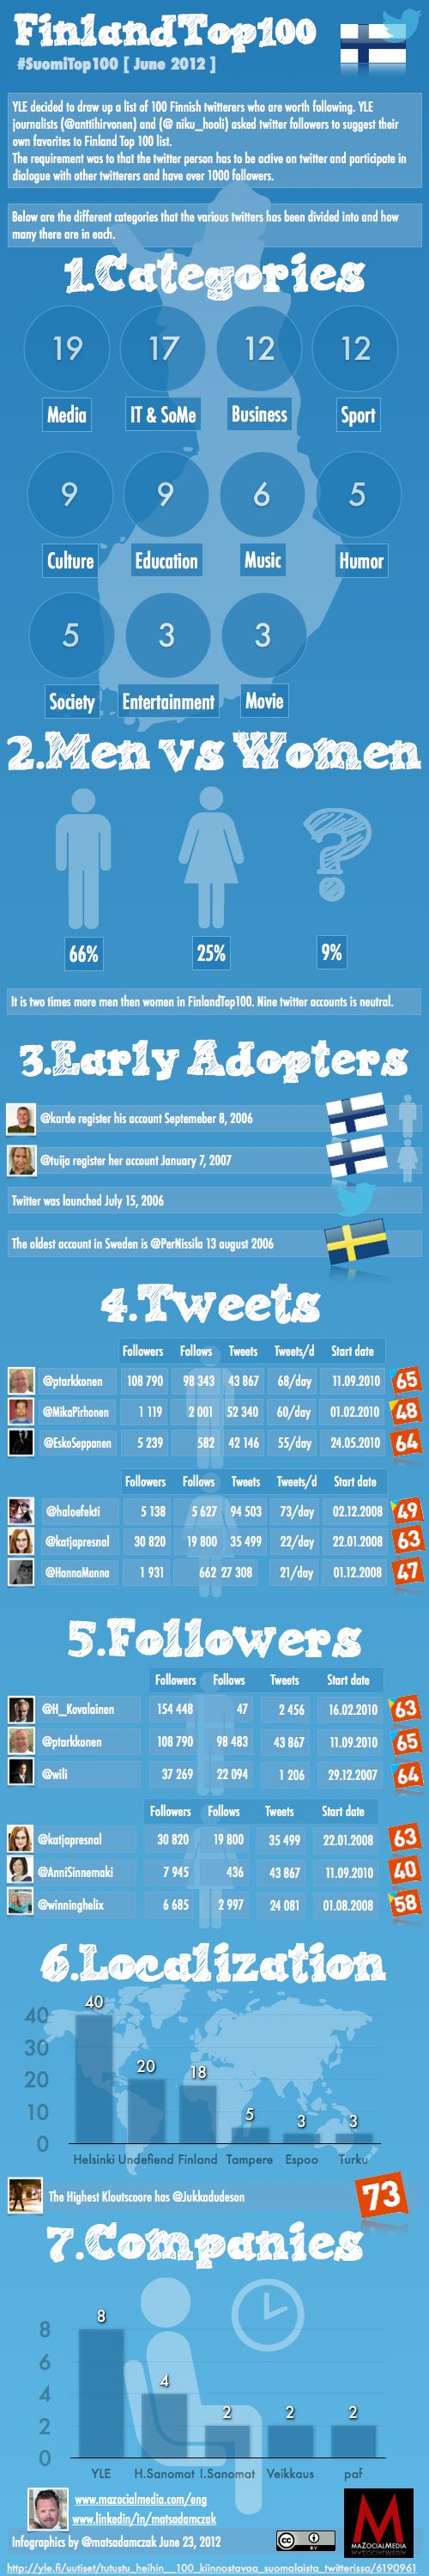 Infographic: Finnish Broadcasting Company's #SuomiTop100 -list (by Mats Adamczak)